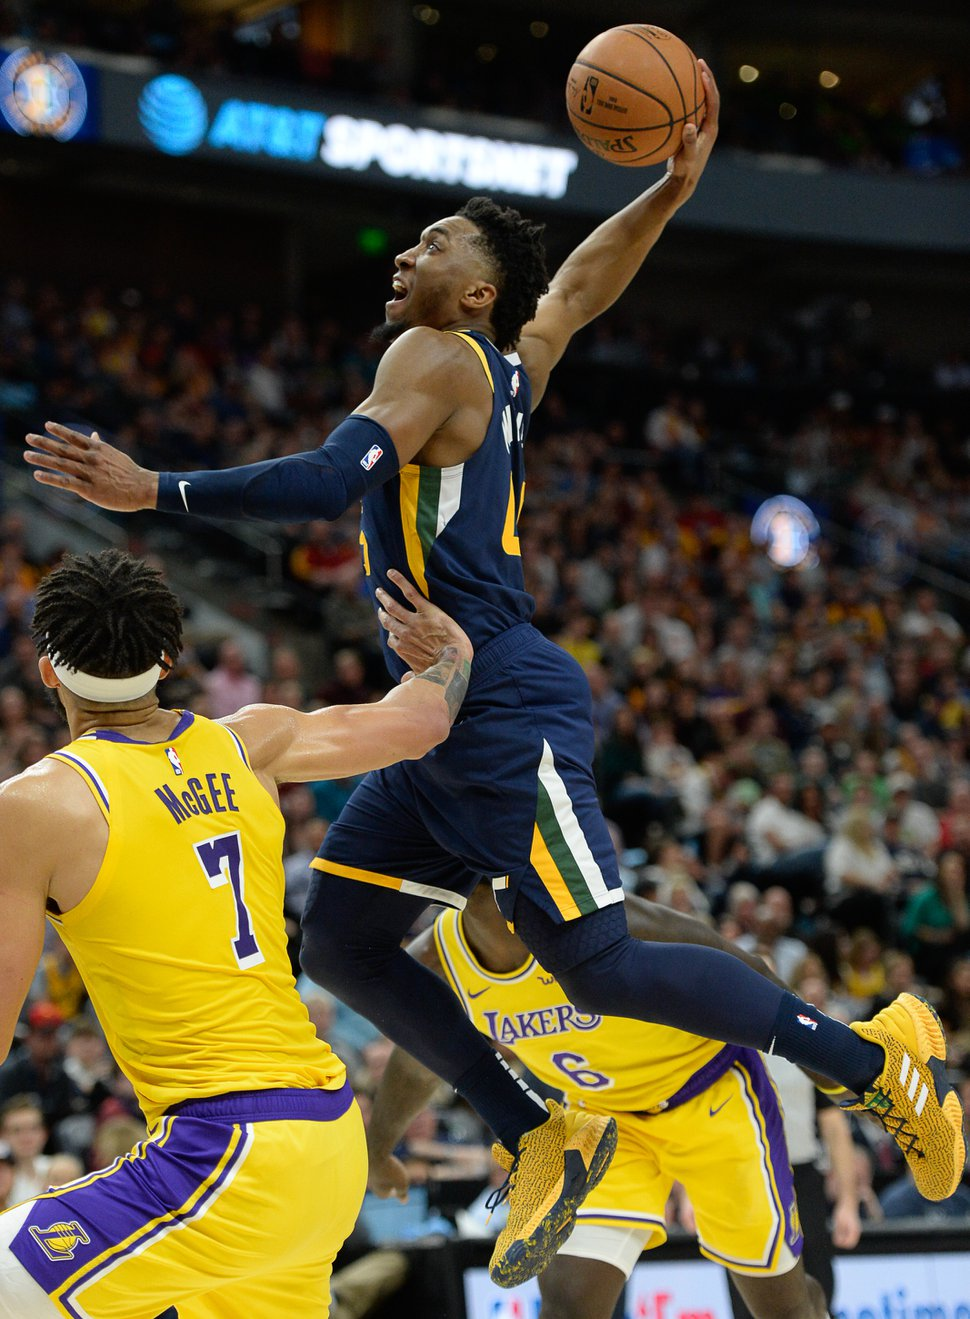 (Francisco Kjolseth | The Salt Lake Tribune) Utah Jazz guard Donovan Mitchell (45) sails in for a dunk in the final seconds of the first half as the Utah Jazz face the Los Angeles Lakers in their NBA game at Vivint Smart Home Arena Wed., March 27, 2019, in Salt Lake City.